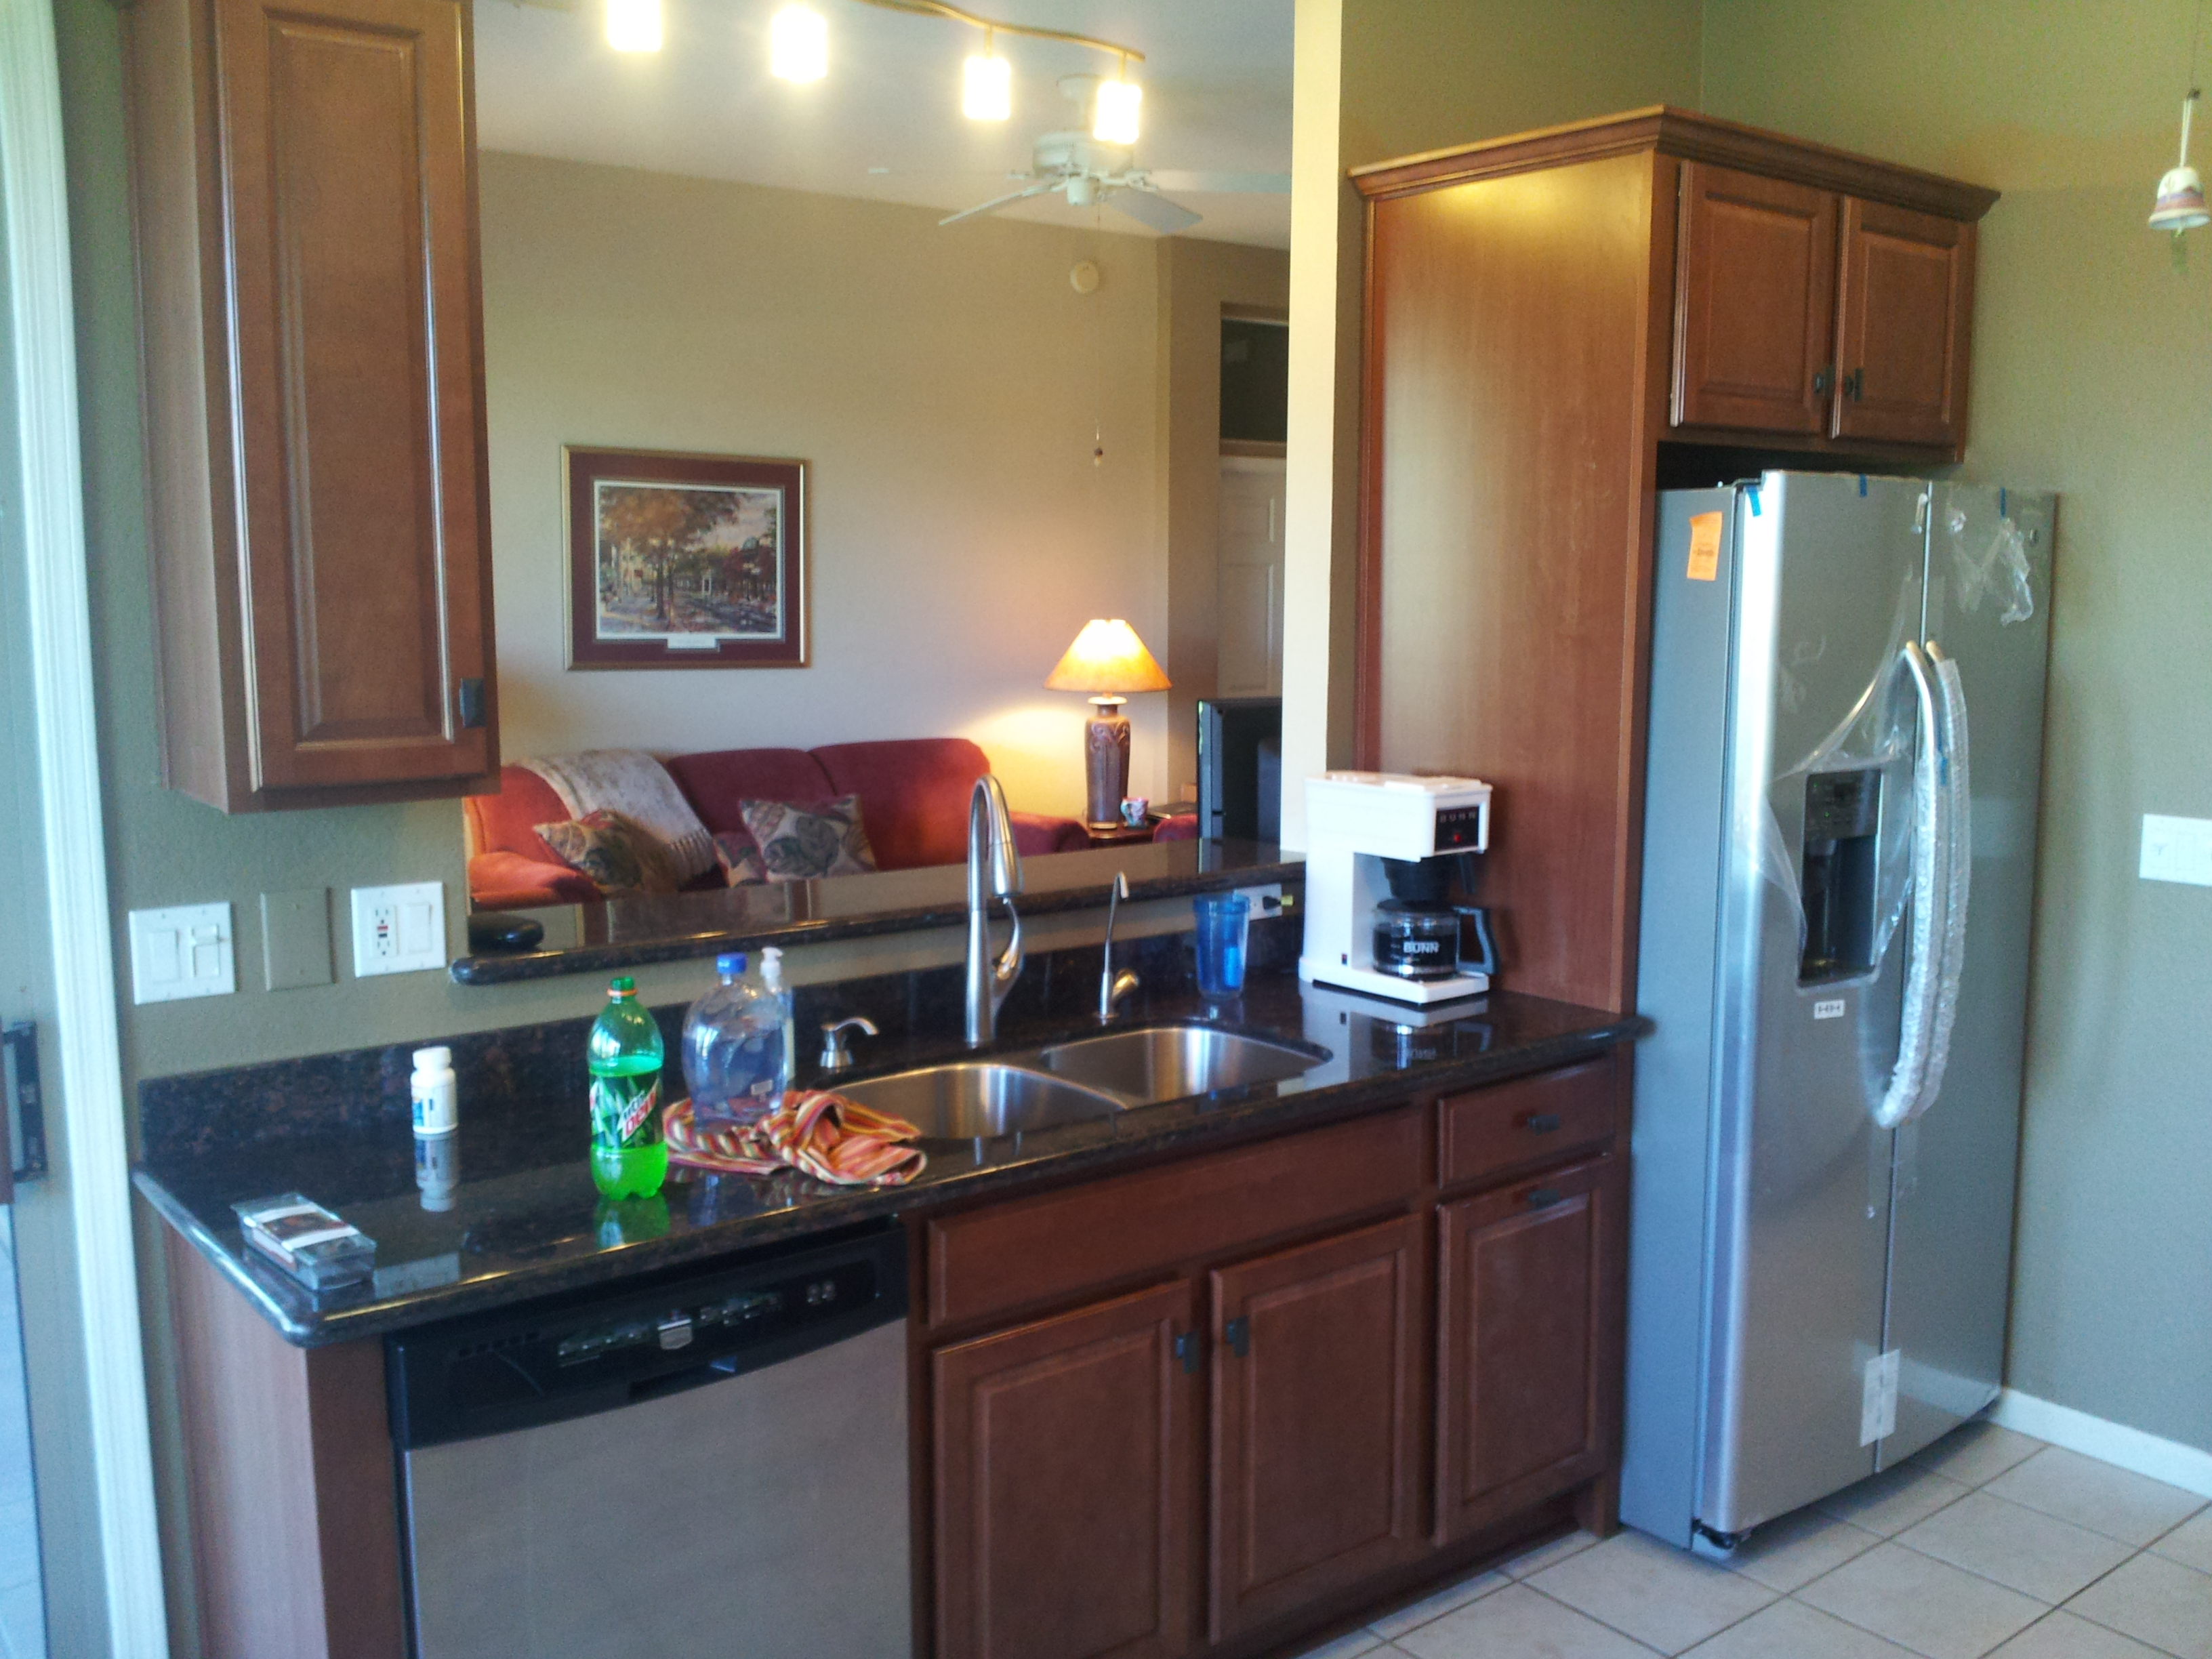 kitchen az cabinets bronze chandelier phoenix and bathroom remodeling contractor remodeled